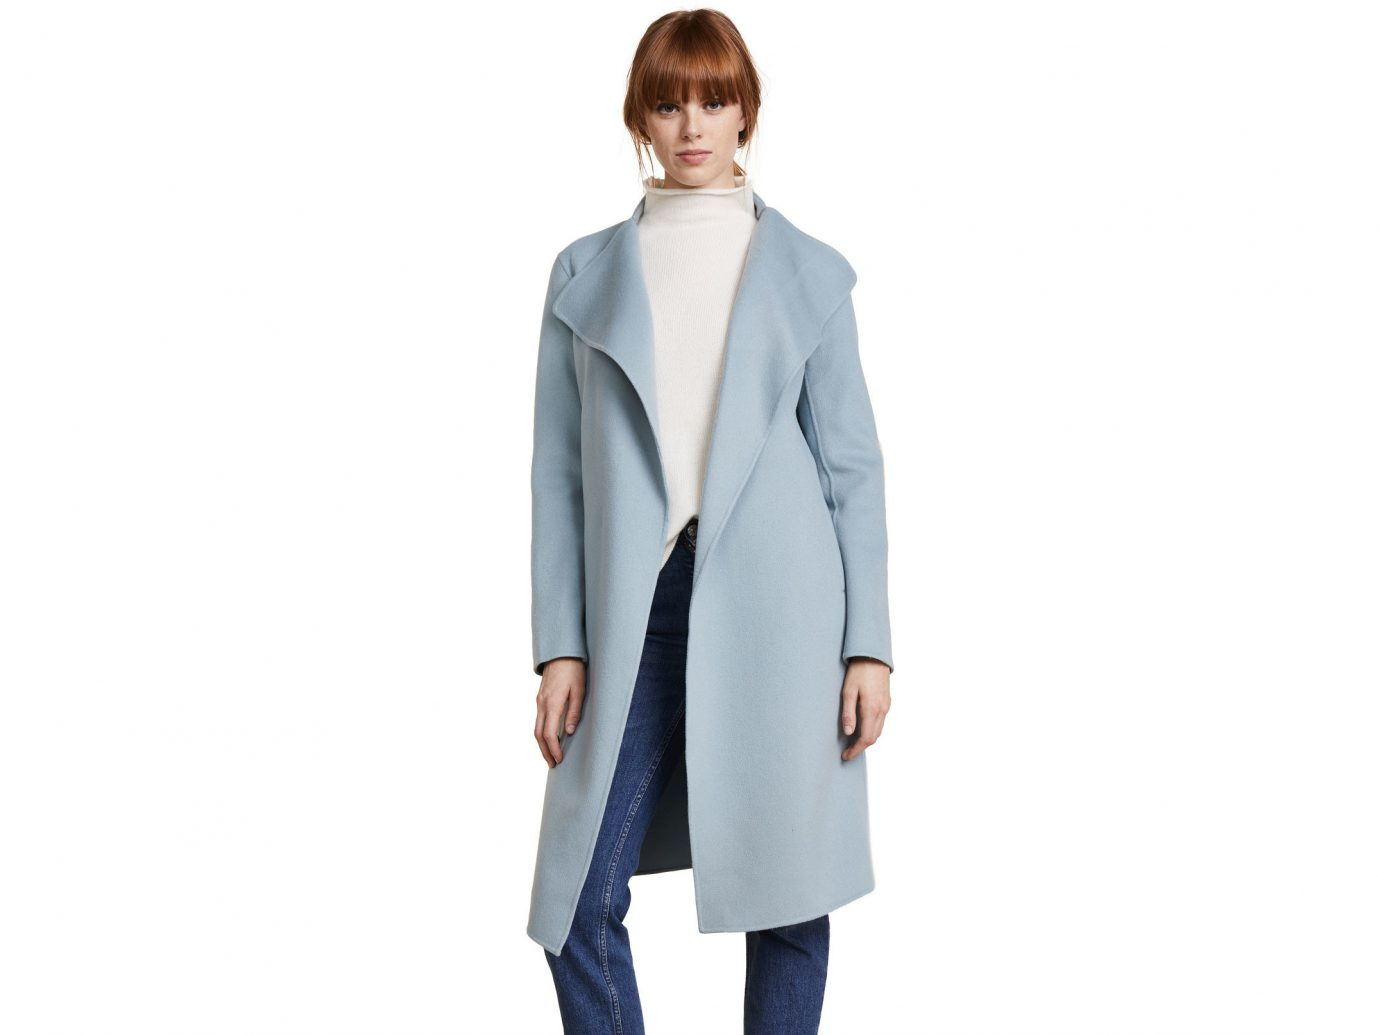 Celebs Style + Design Travel Shop clothing suit coat wearing standing posing shoulder fashion model overcoat neck formal wear joint trench coat professional dressed clothes